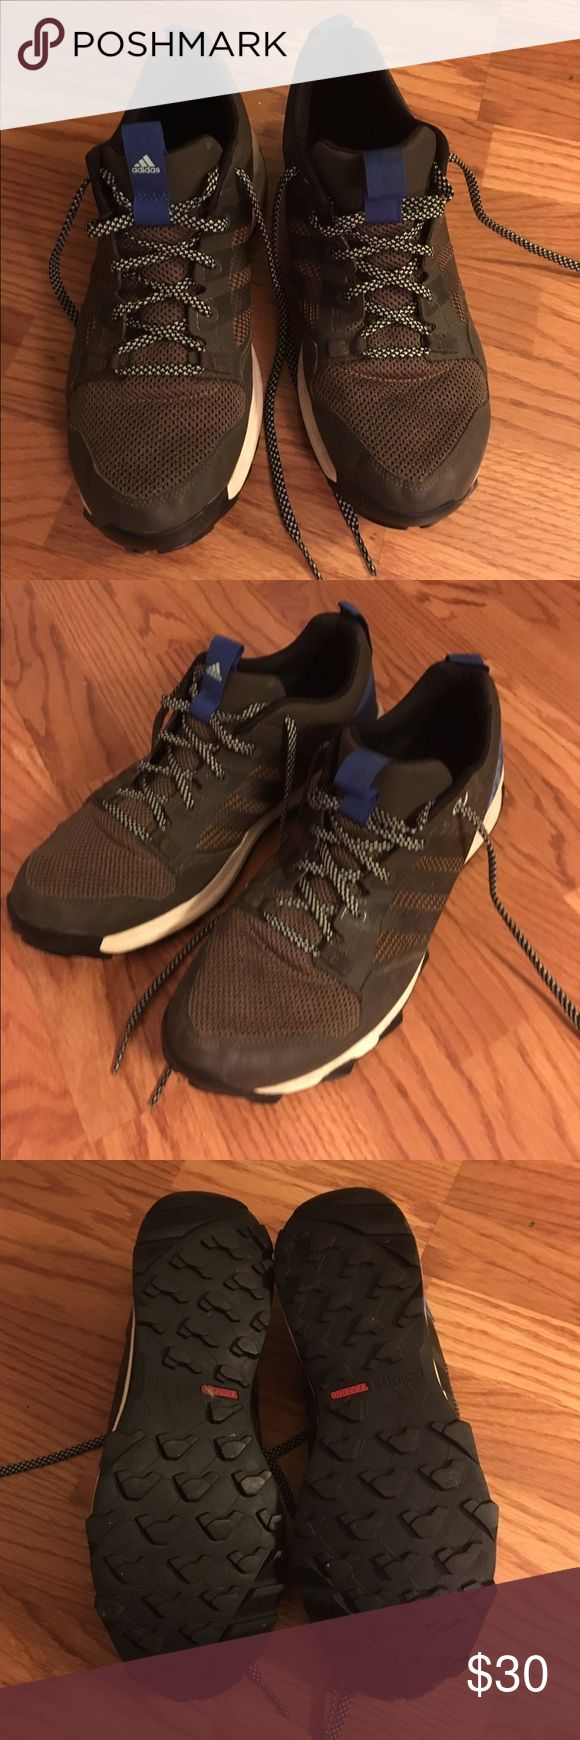 Men's addidas trail running shoes Only worn a few times. Like Nike trail running sneakers Adidas Shoes Sneakers